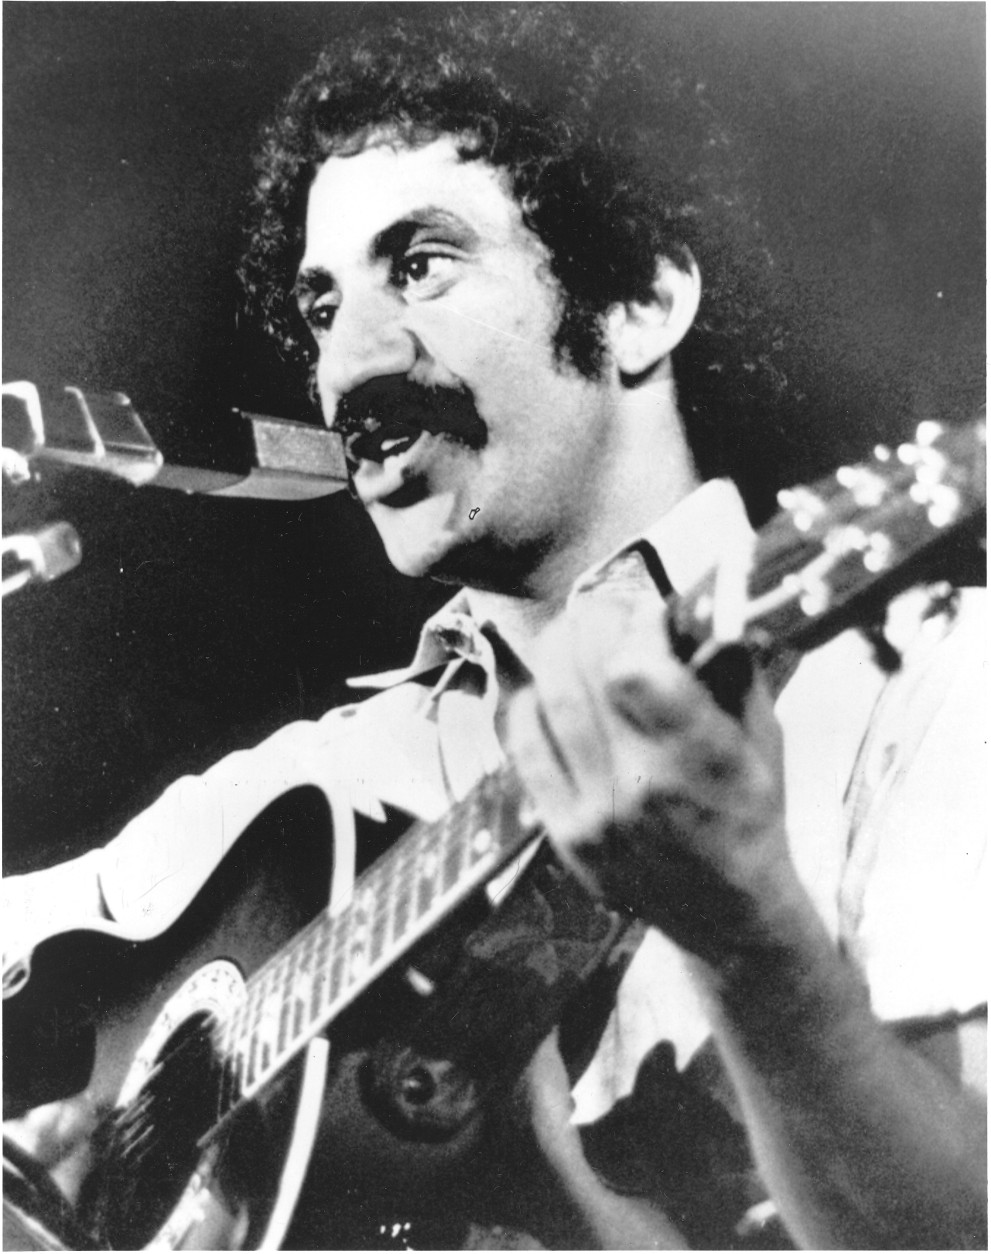 Singer Jim Croce is seen as he appeared at his last performance in Natchitoches, La., Sept. 21, 1973.  After this appearance, he and five others were killed when his plane crashed near Natchitoches airport.  (AP Photo)